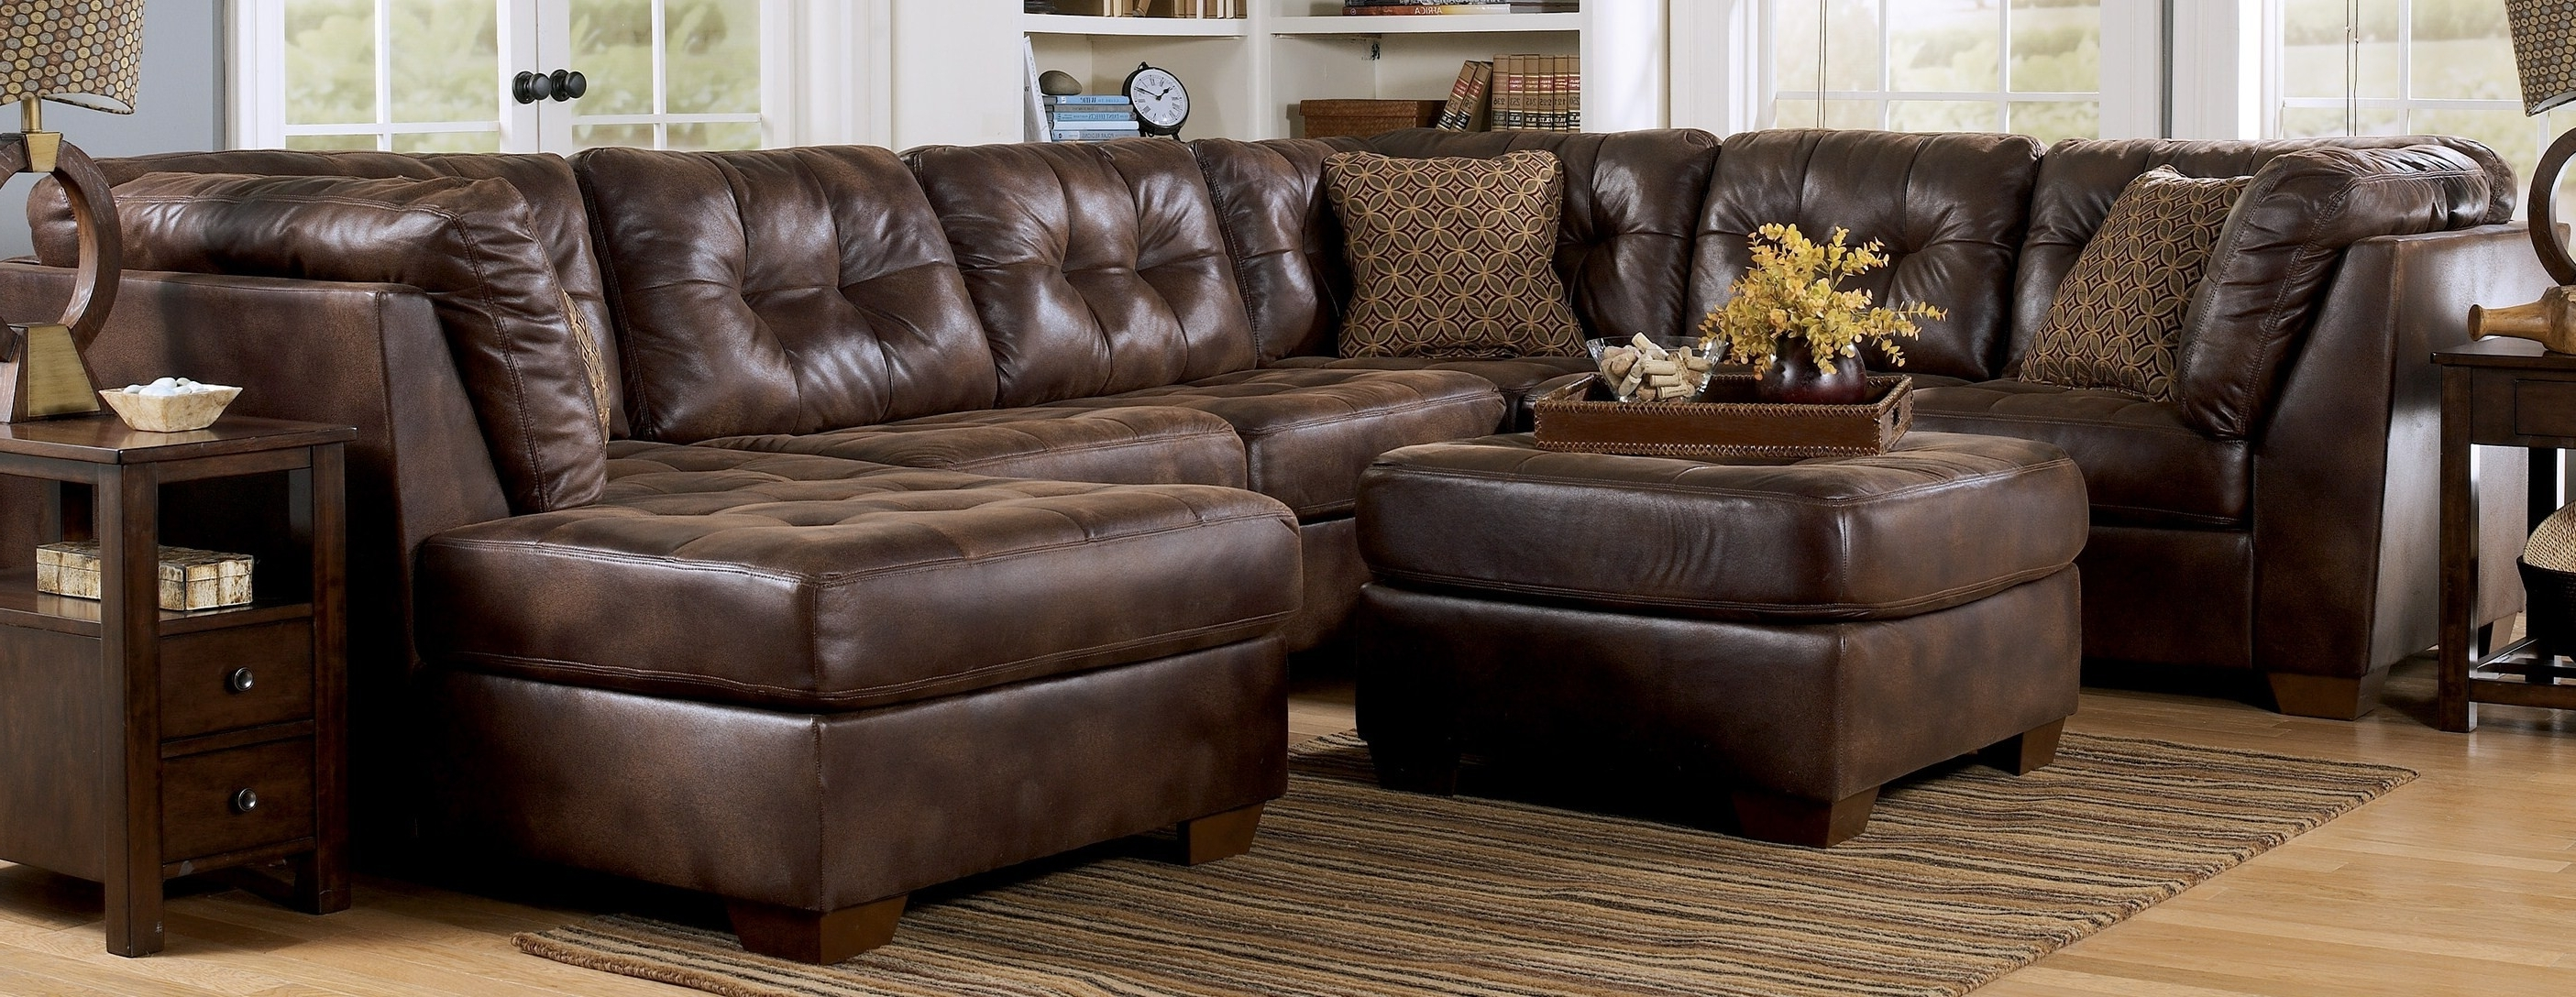 Rota Home Pertaining To Leather Chaise Sectionals (View 7 of 15)